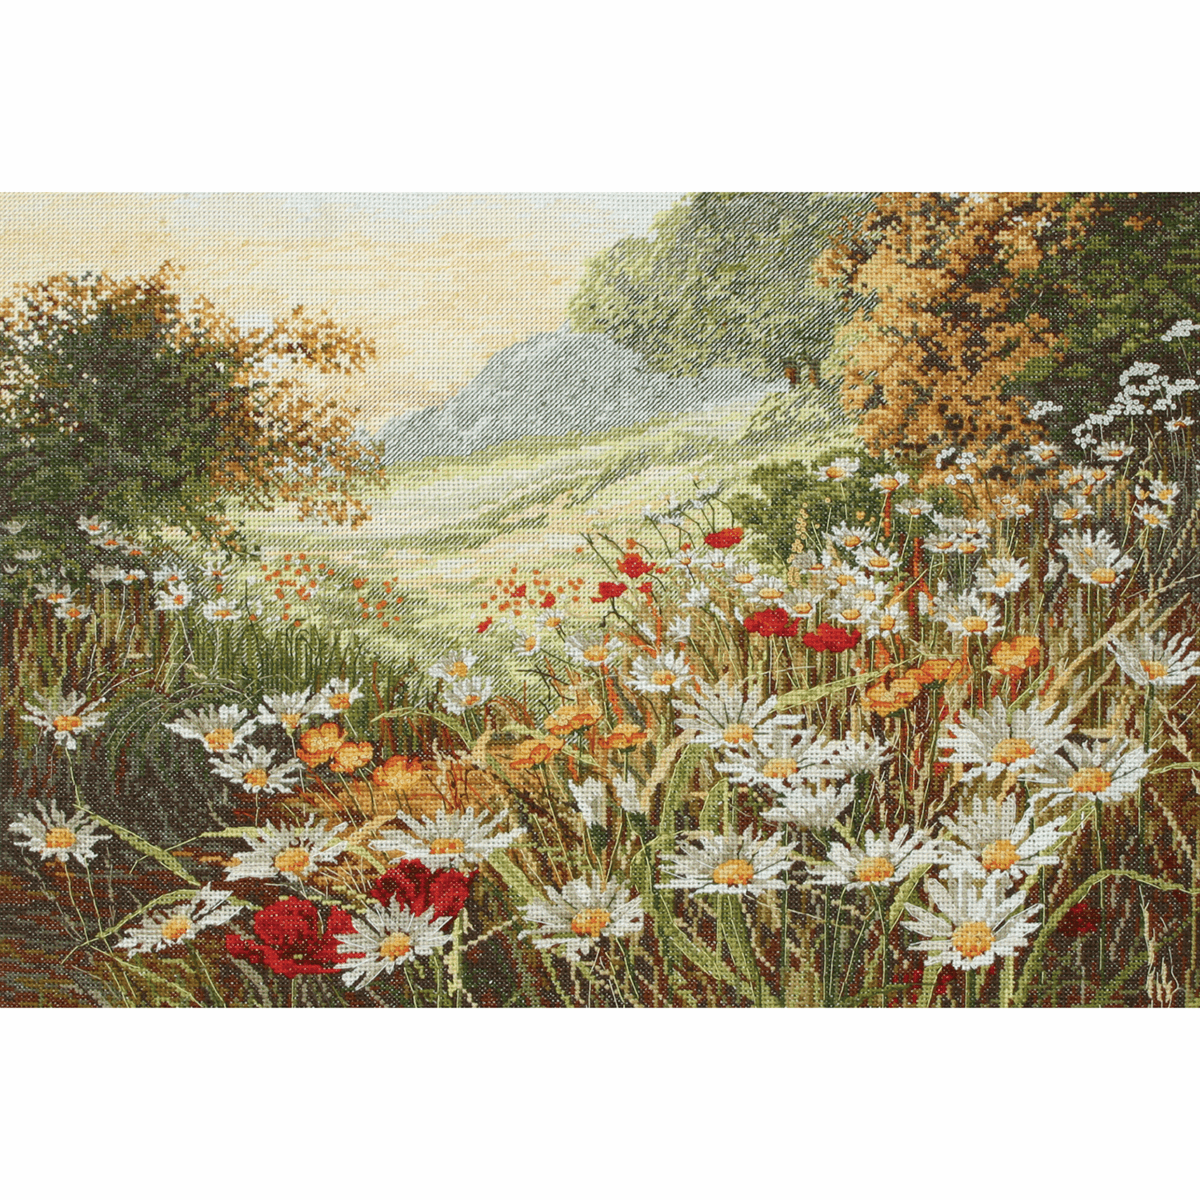 Picture of Counted Cross Stitch Kit: Maia: Evening Sun